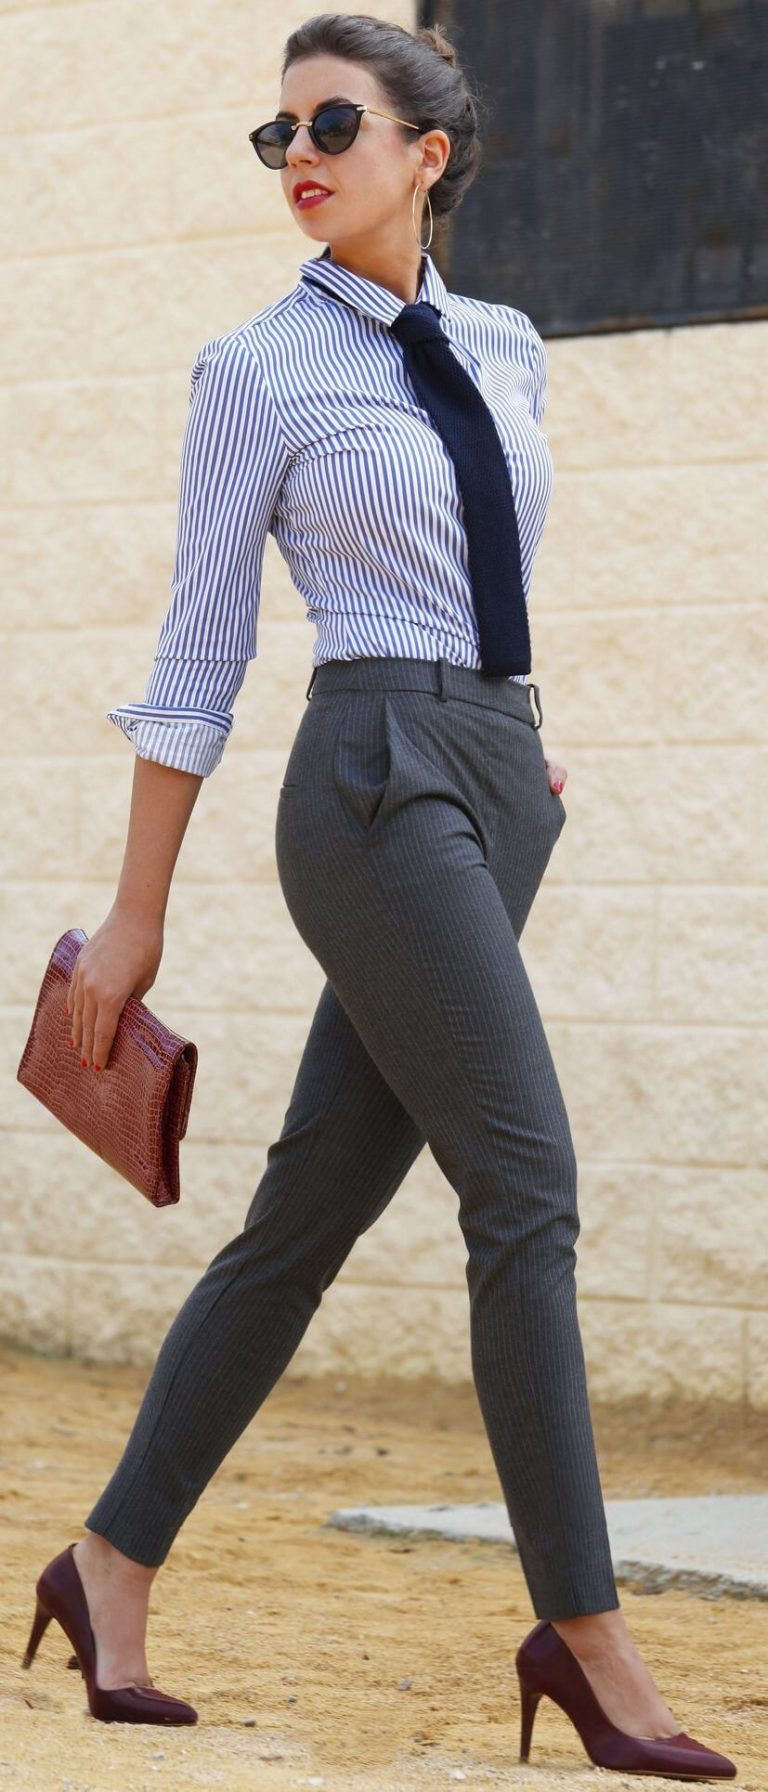 Fashionable office attire for women 36